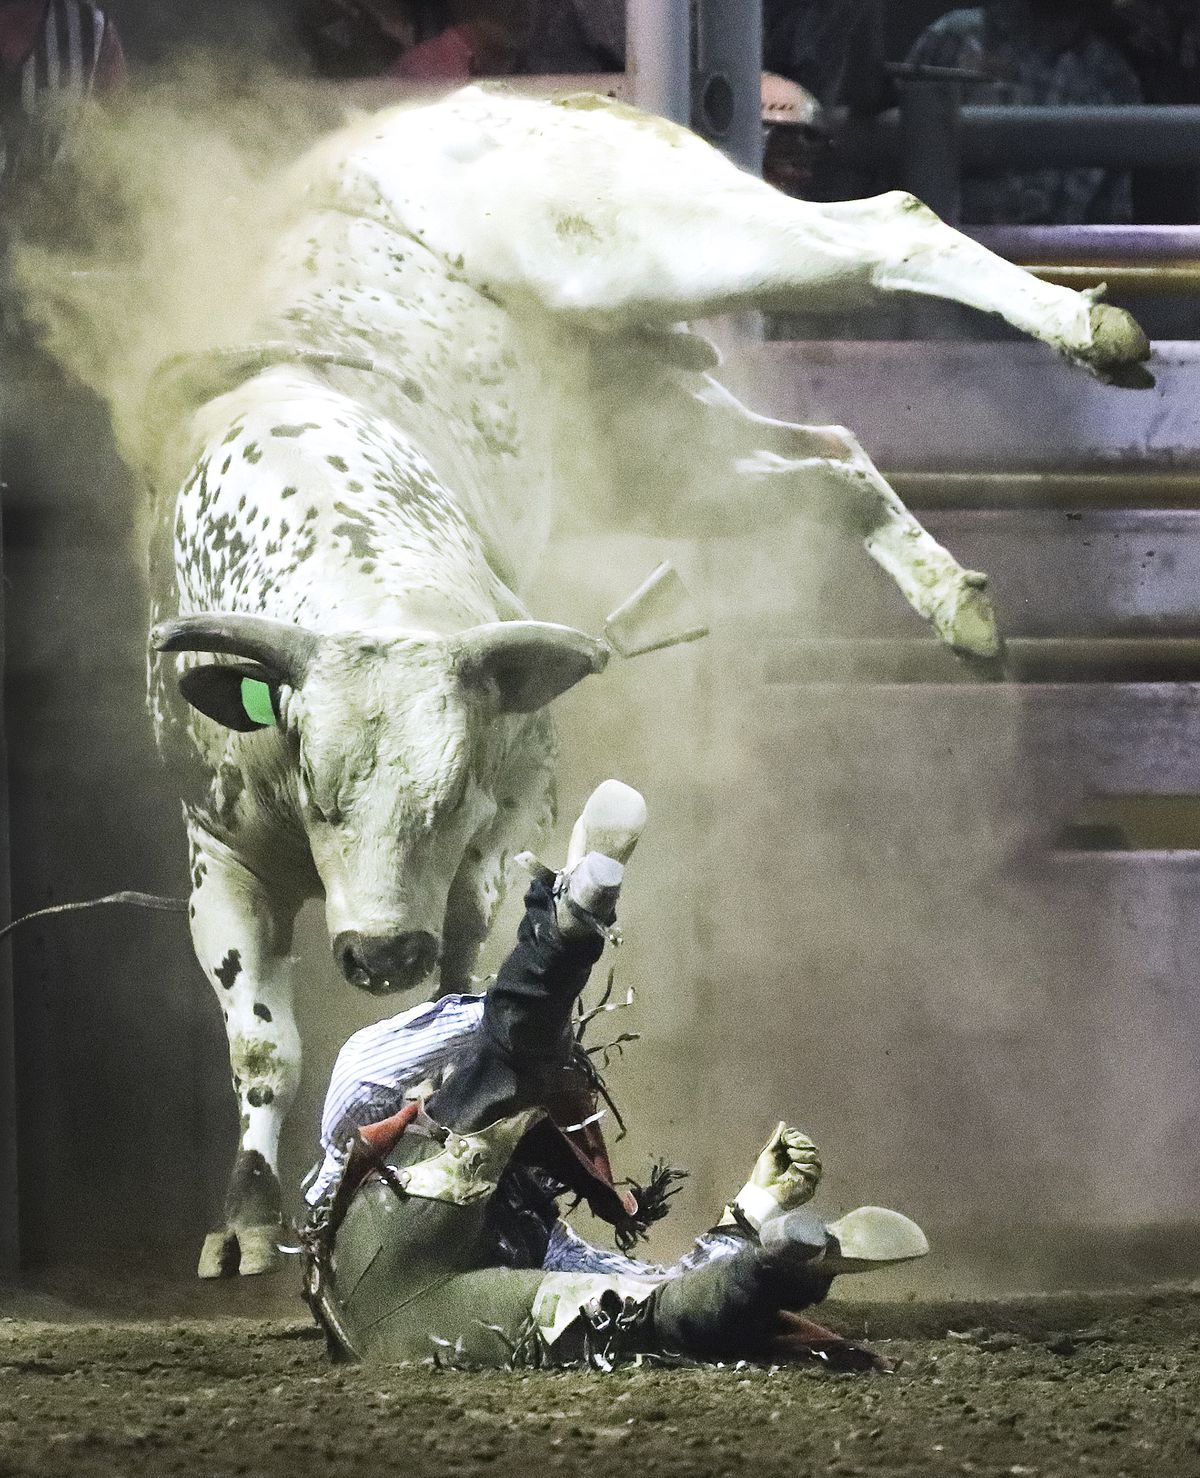 Chance Ekins, of Nephi, Utah, is thrown from a bull during the Magic Valley Stampede PRCA Rodeo at the Twin Falls County Fair in Filer, Idaho, on Thursday Sept 3, 2020.